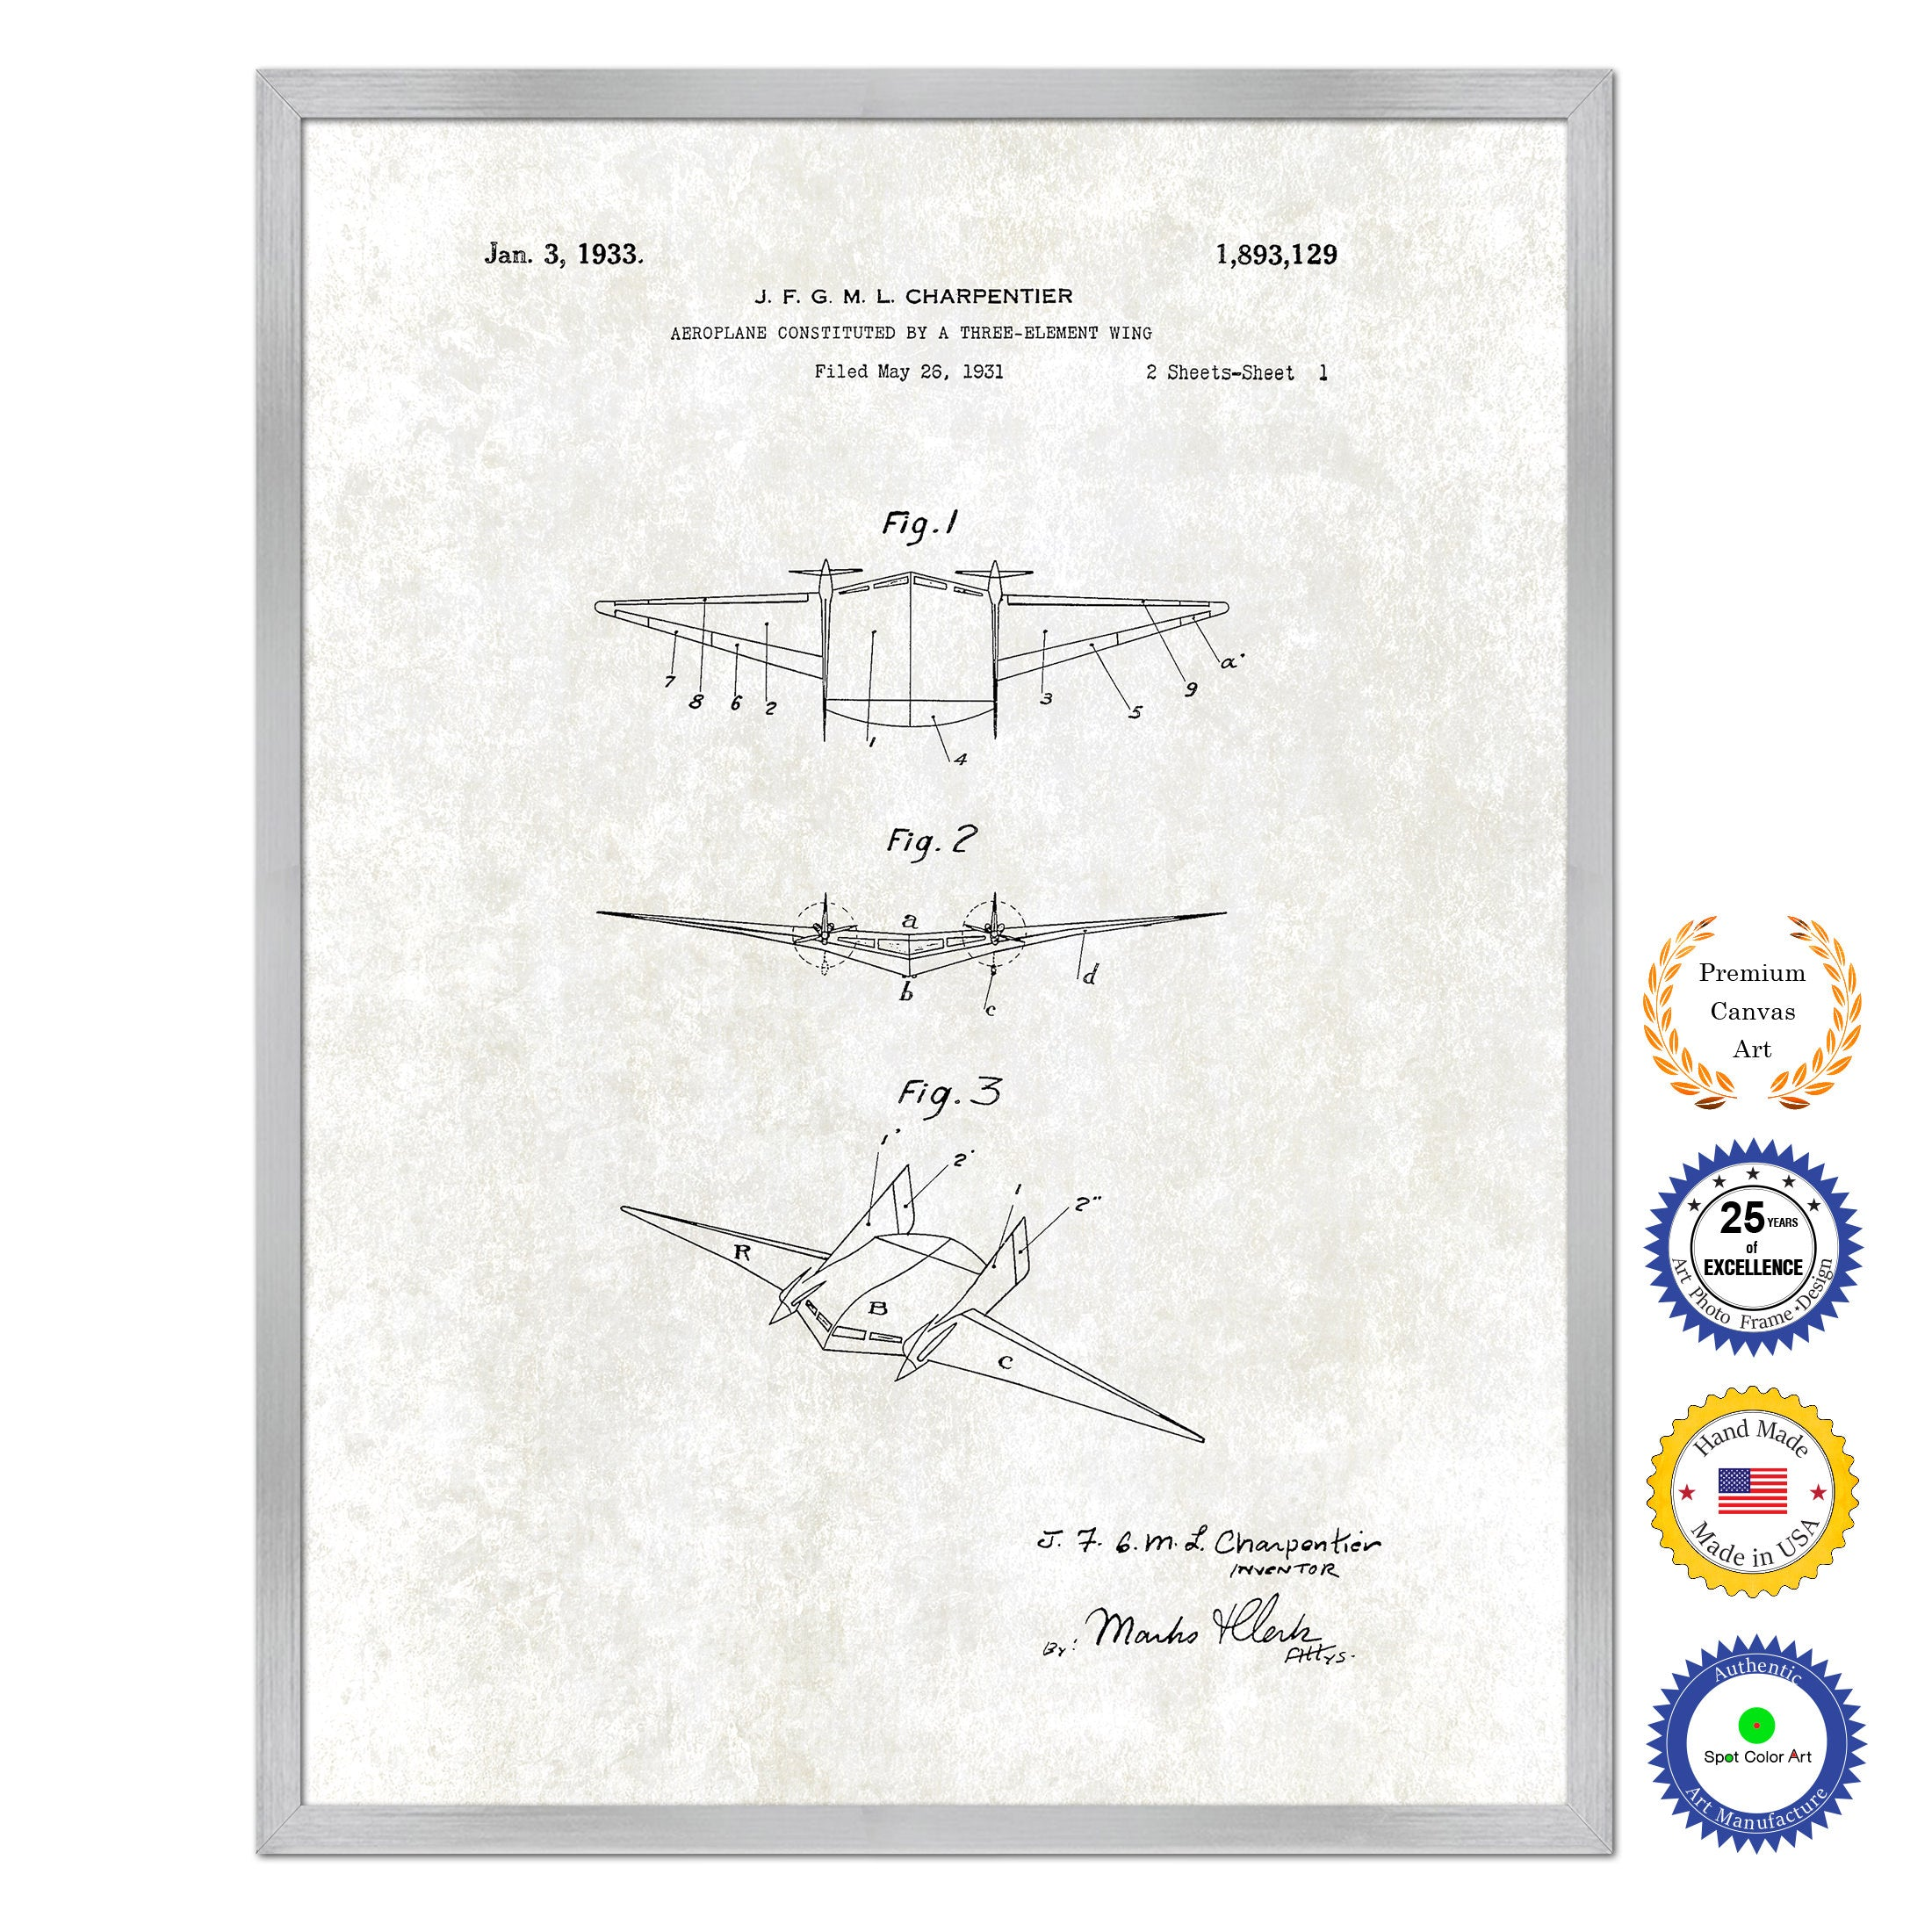 1933 Three Element Wing Airplane Antique Patent Artwork Silver Framed Canvas Print Home Office Decor Great for Pilot Gift